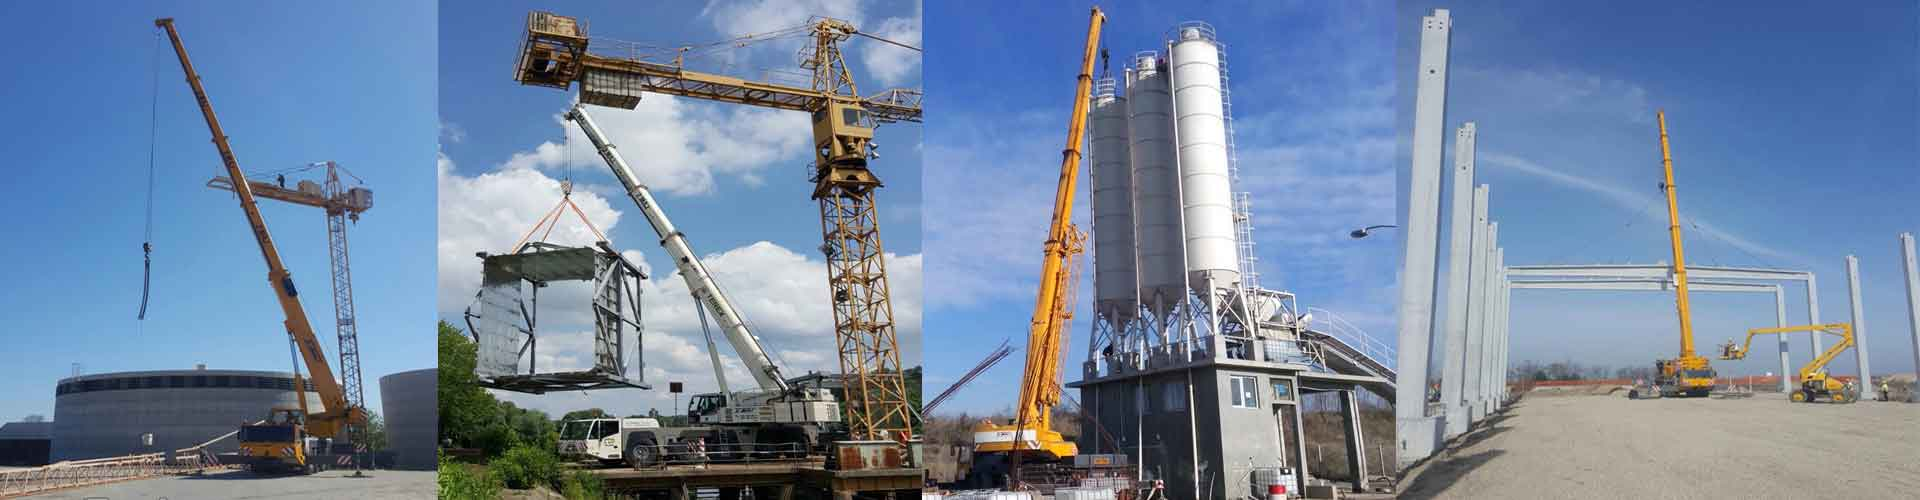 Crane rental service up to 250 tons